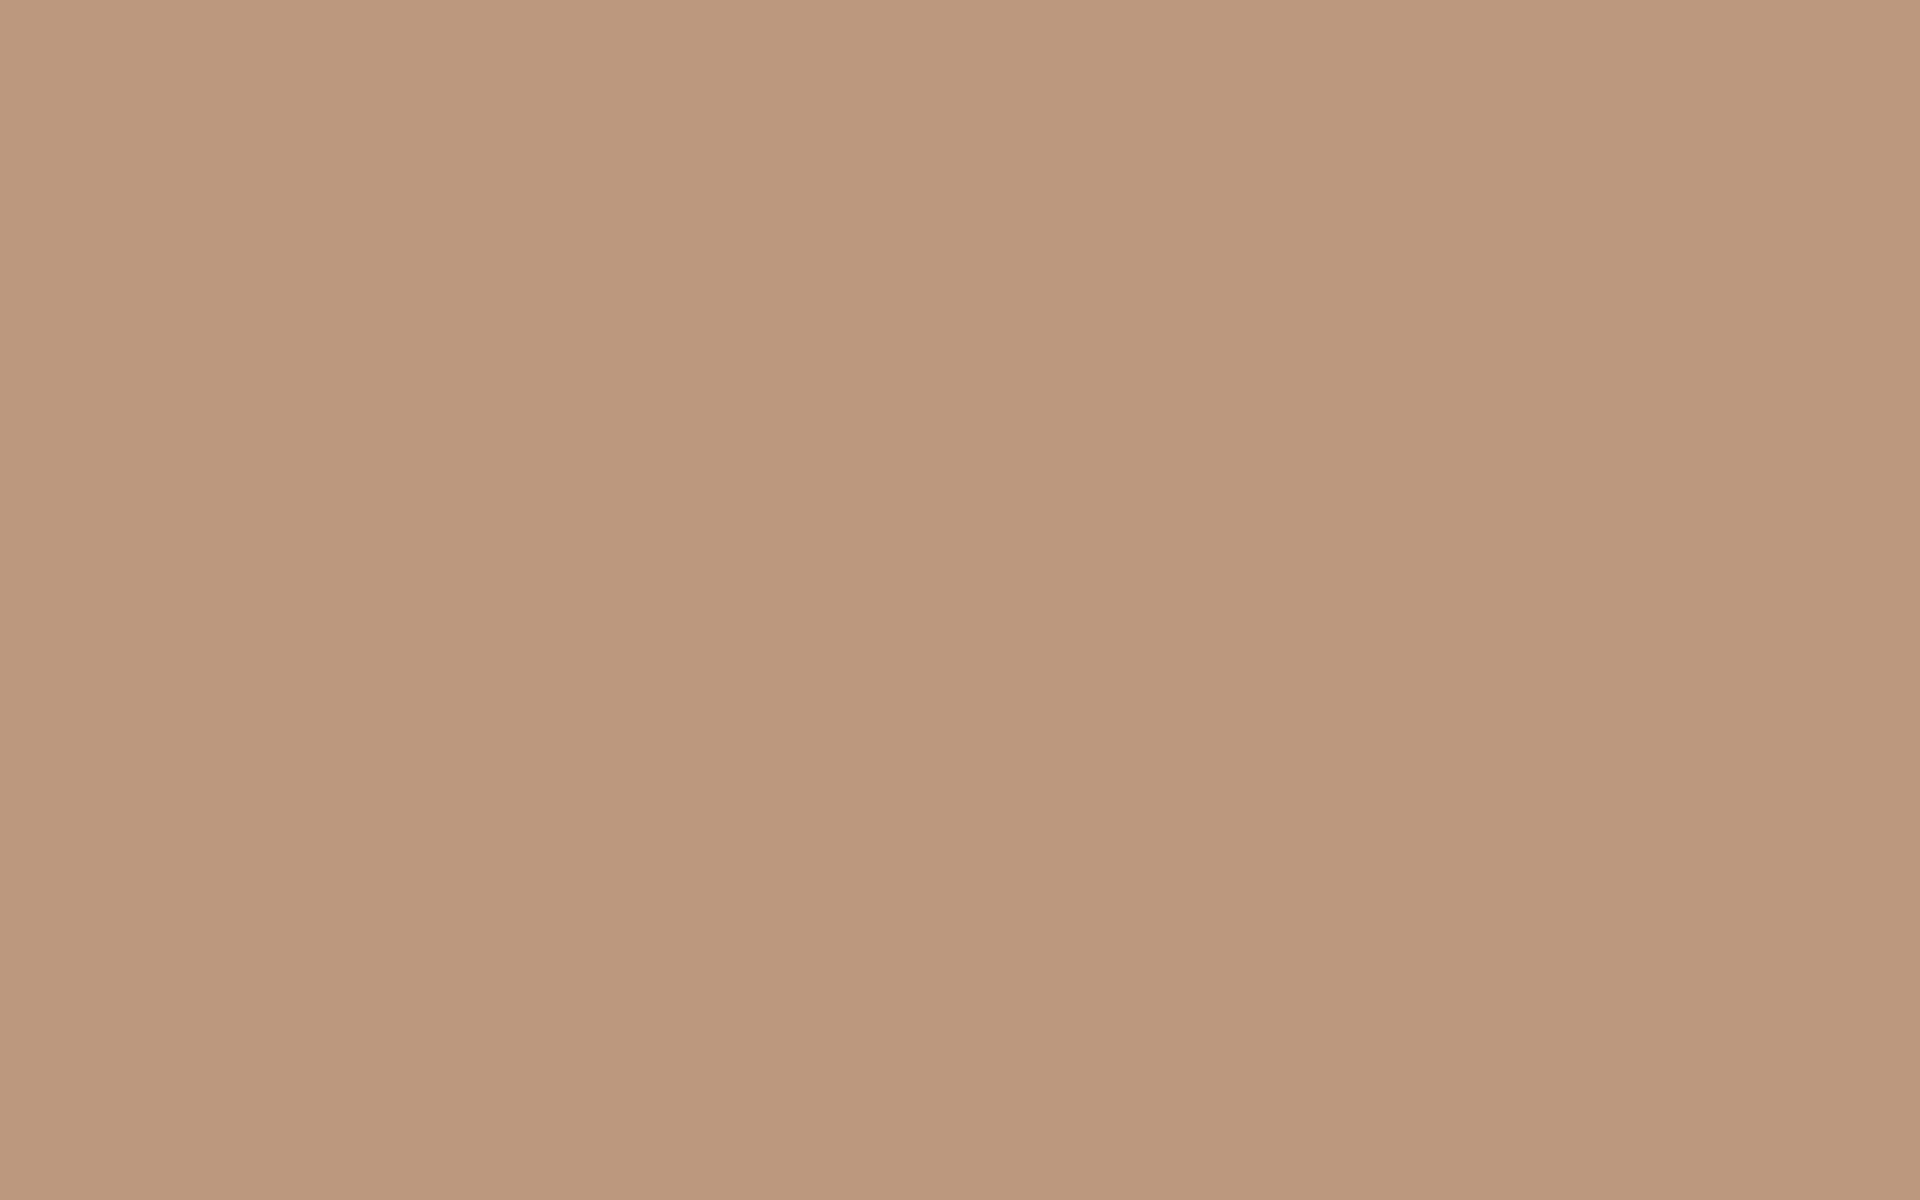 1920x1200 Pale Taupe Solid Color Background